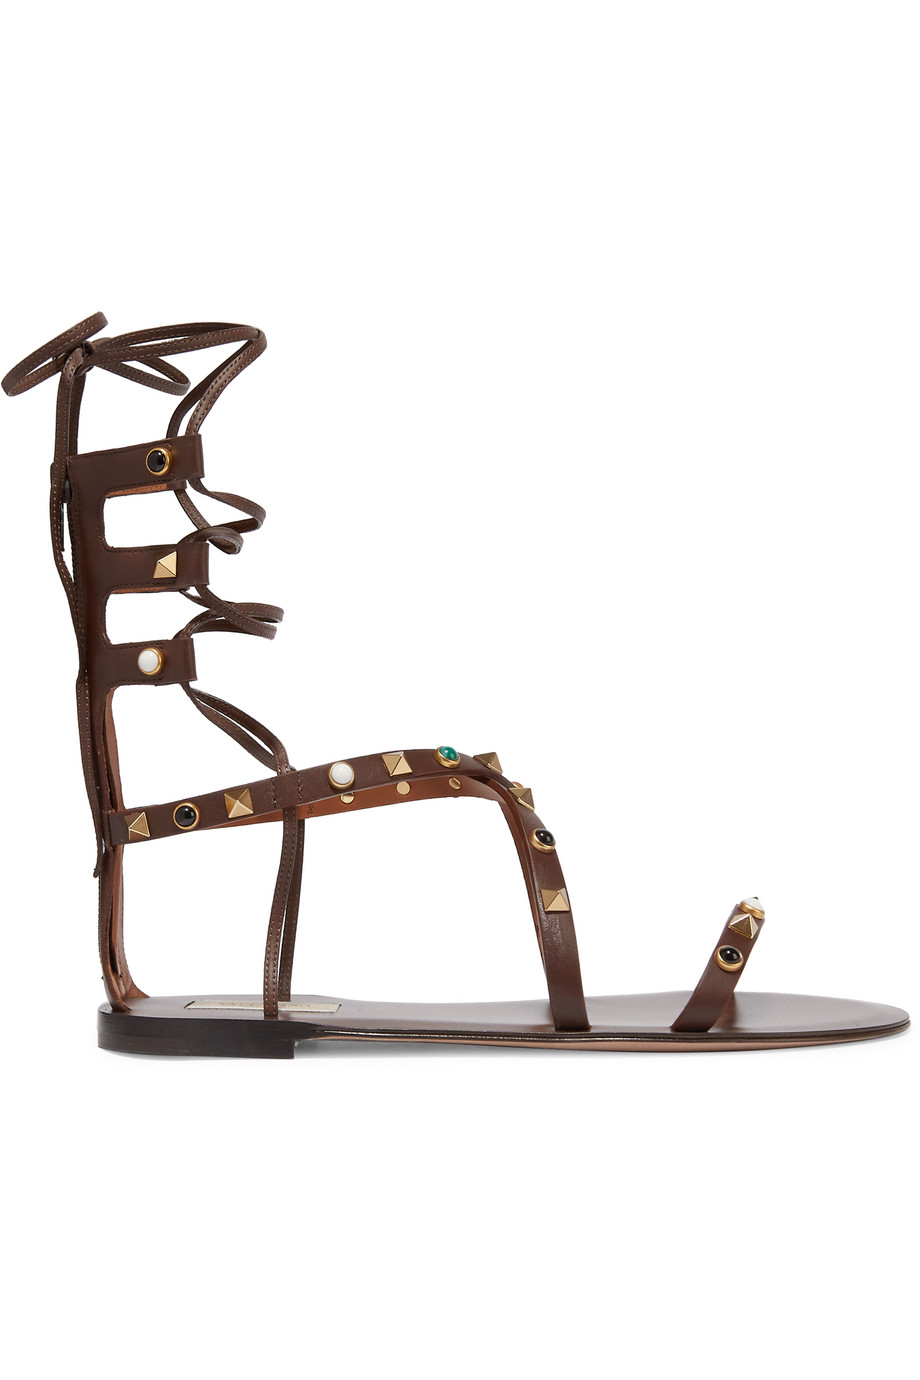 Valentino Rockstud Embellished Leather Sandals, Chocolate, Women's US Size: 8, Size: 38.5